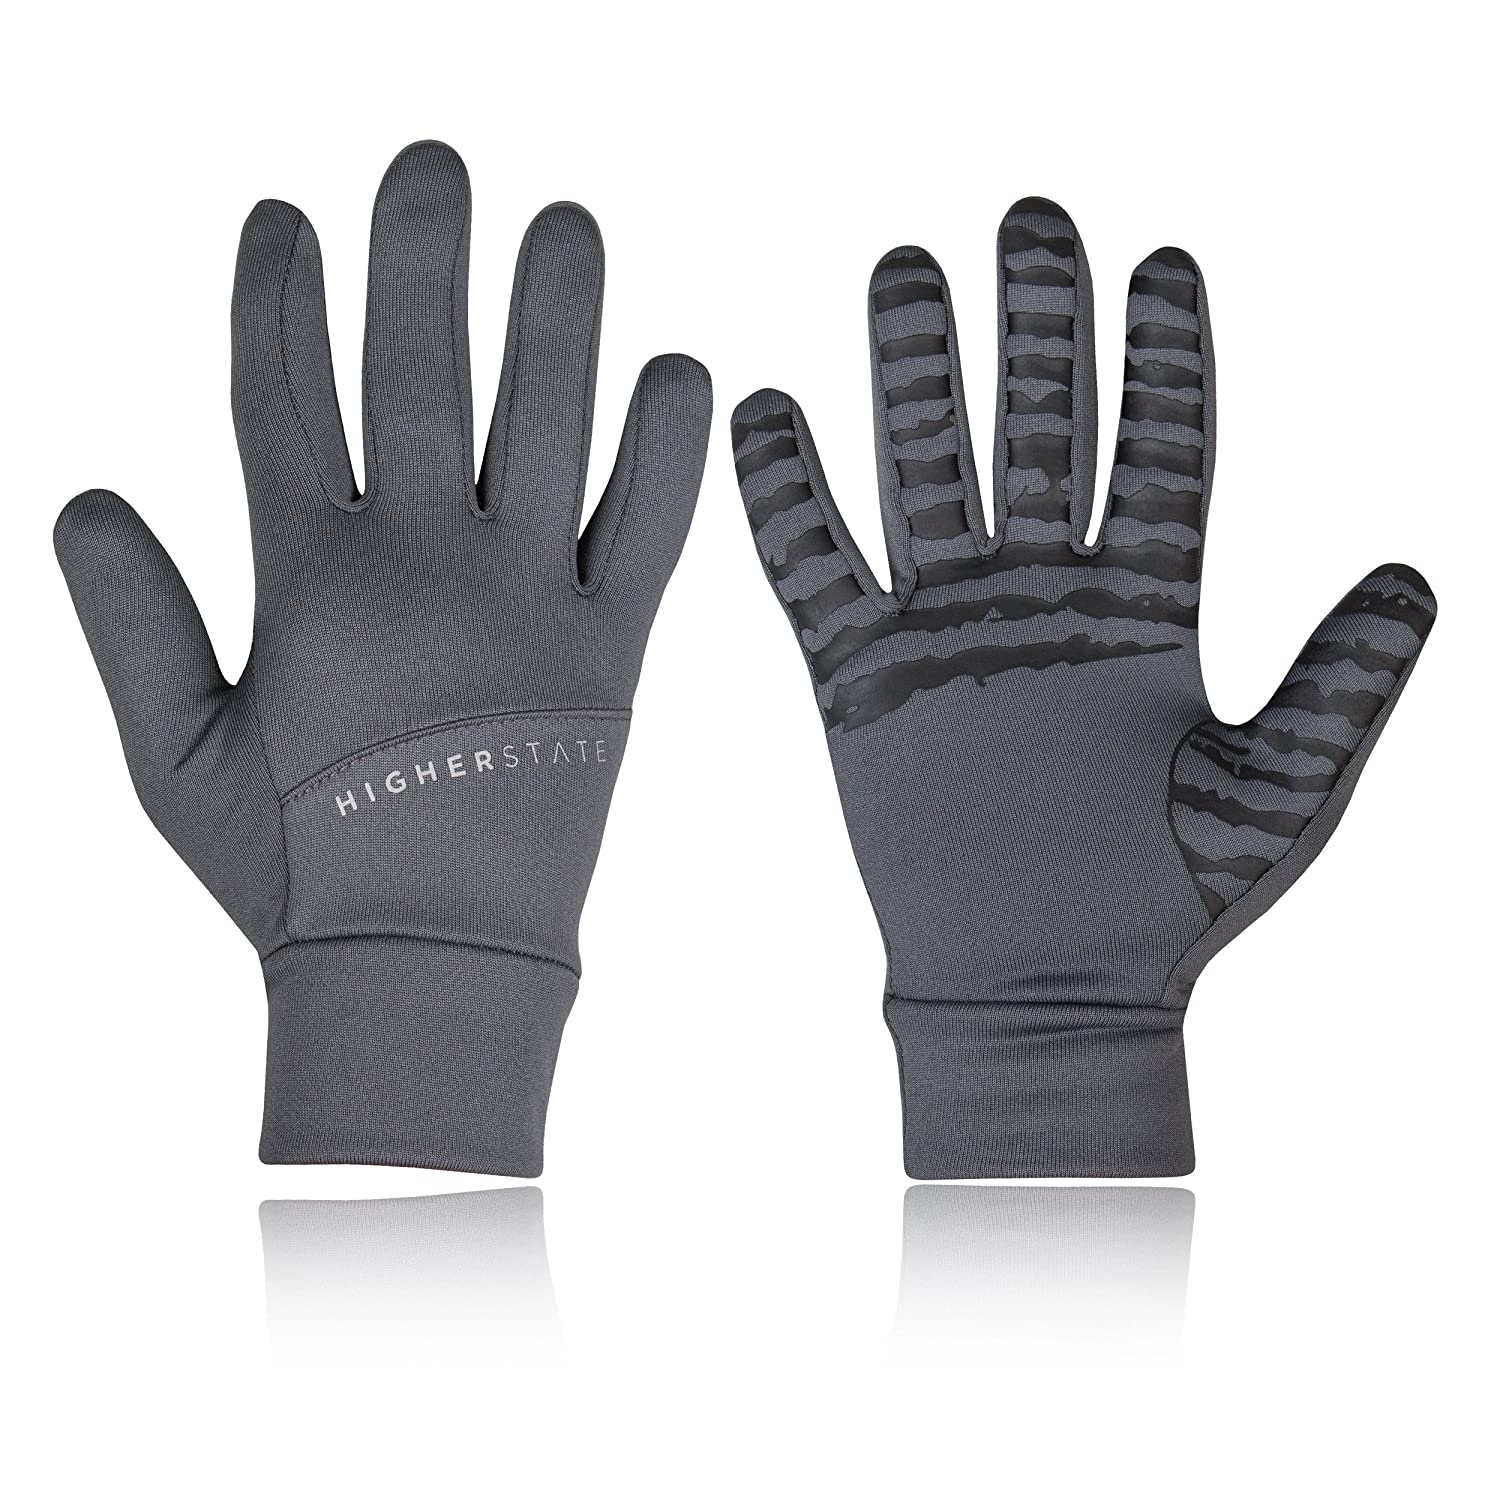 Higher State Guantes Para Correr